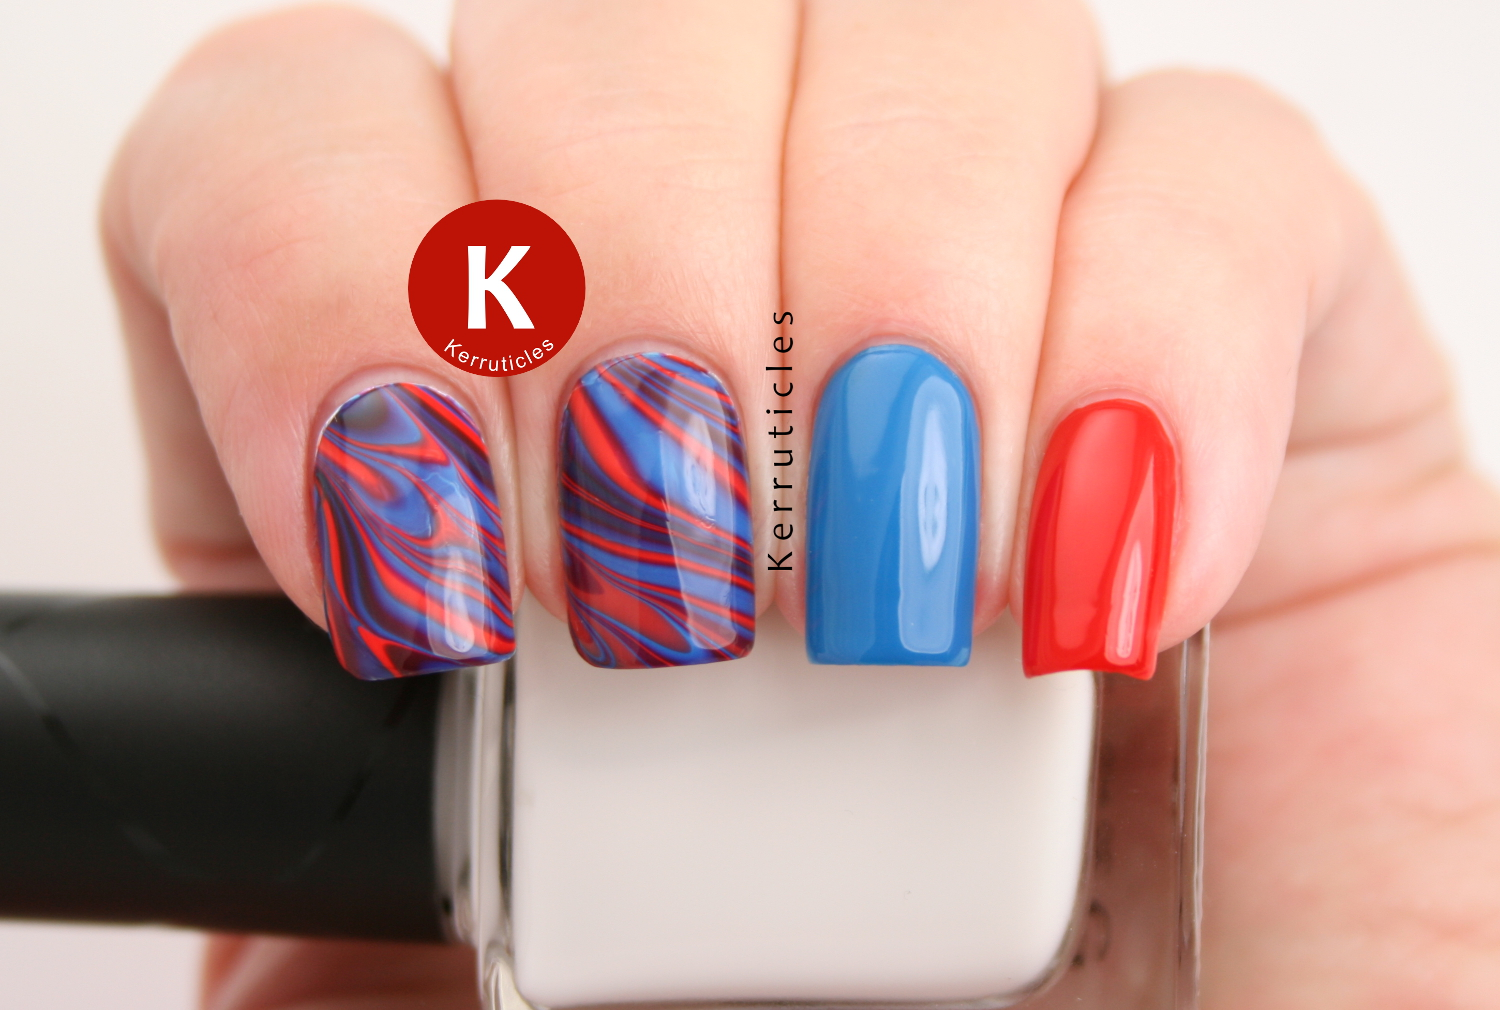 Red, blue and purple water marble using Nella Milano polishes: The Rubinator, True Blue and A Royal Affair